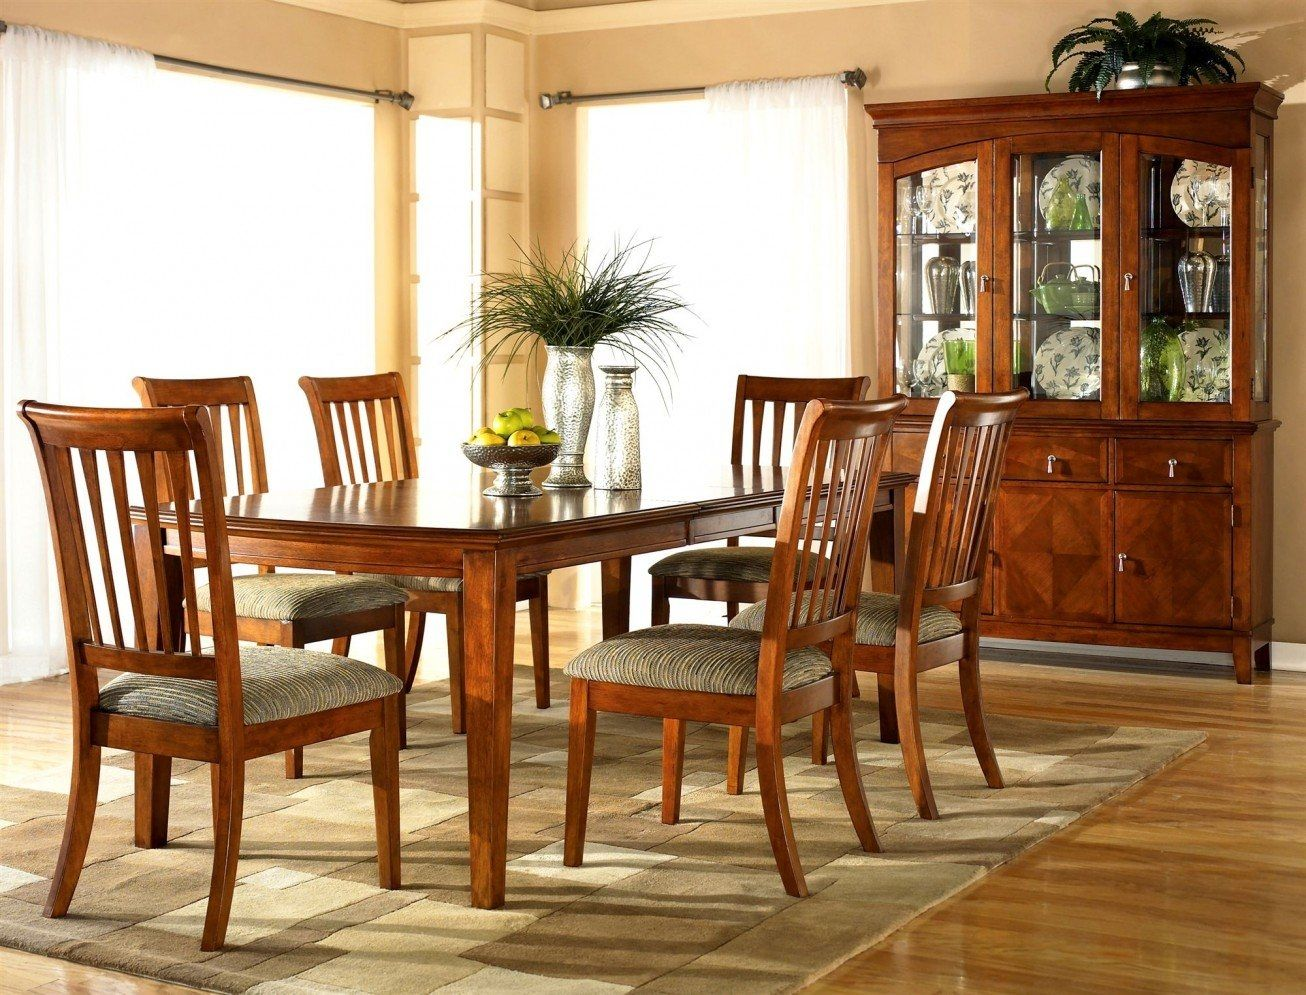 Picturesque cherry wood dining room set chairs decor ideas and